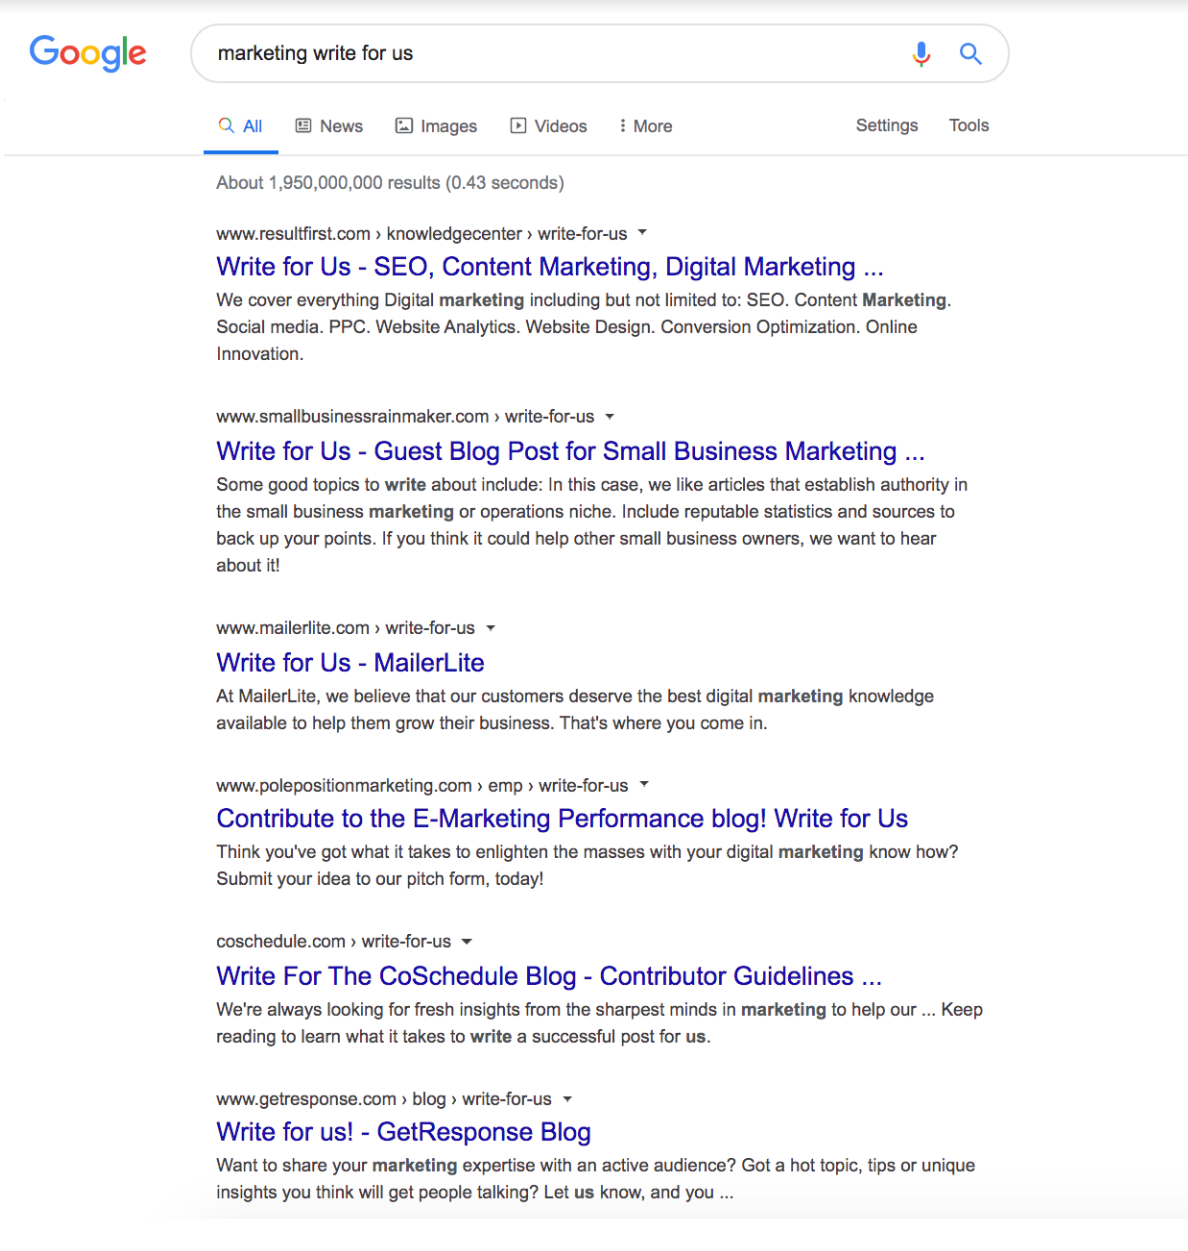 SERPs Query - marketing write for us